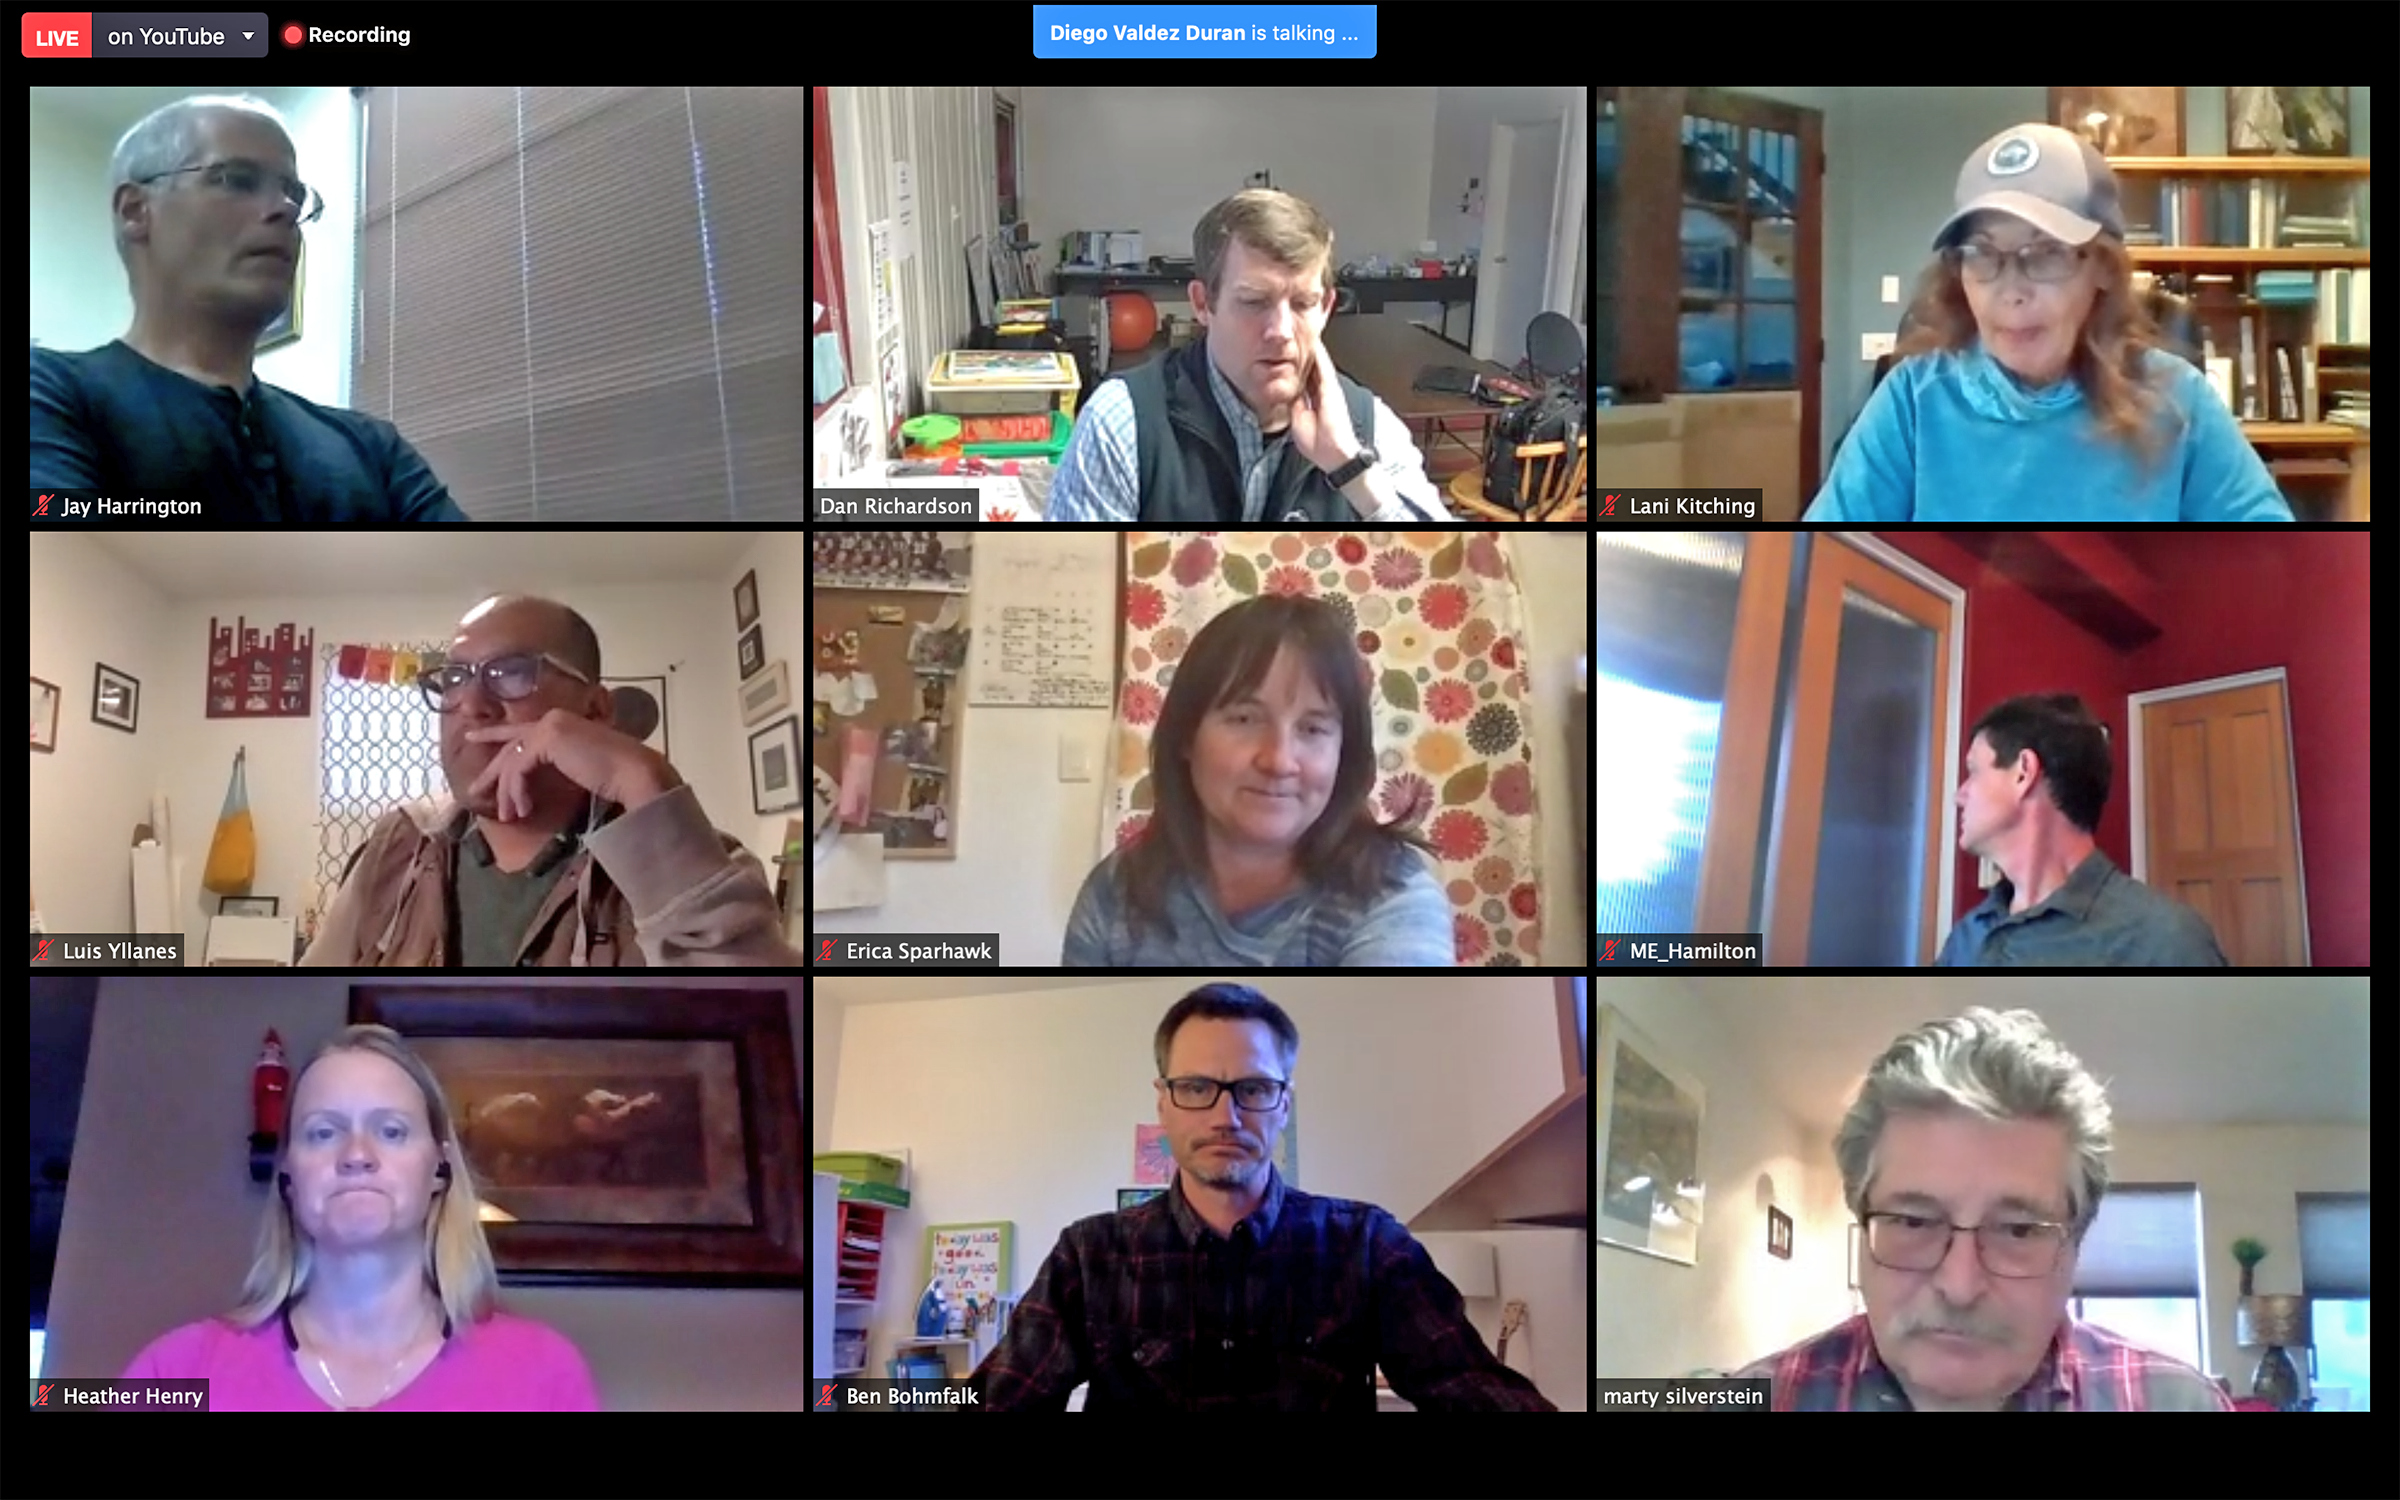 Where have all the meetings gone? Online, of course! thumbnail